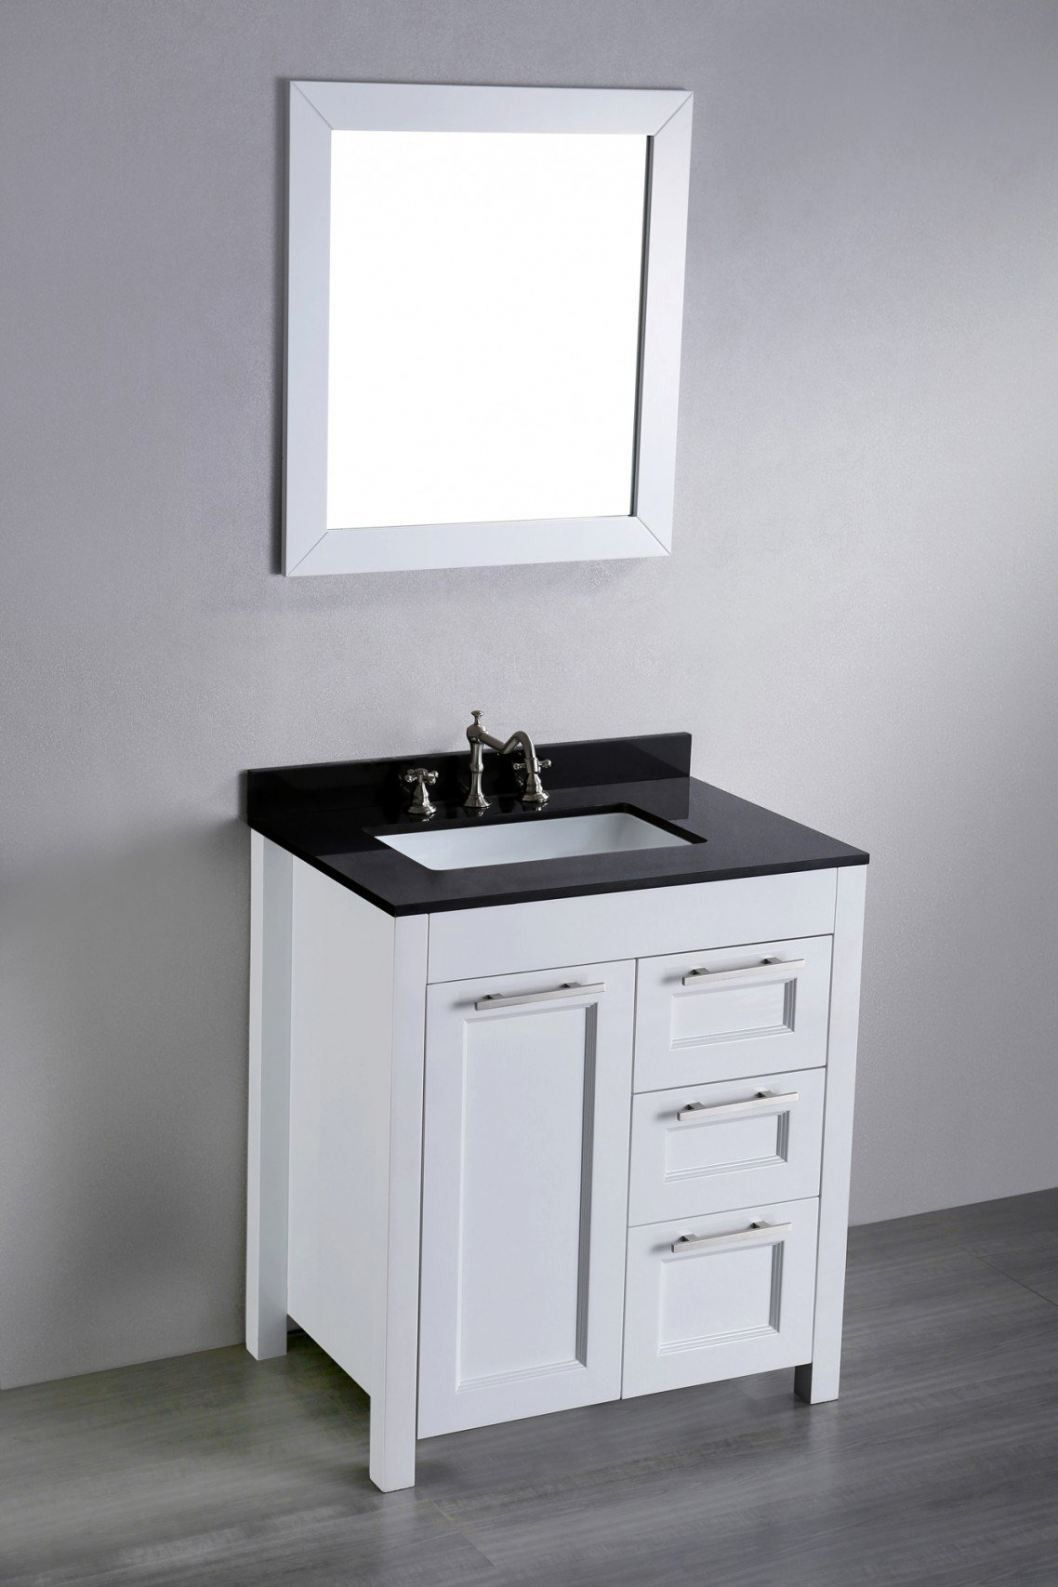 20 25 Inch Bathroom Vanity Cabinet Kitchen Floor Vinyl Ideas